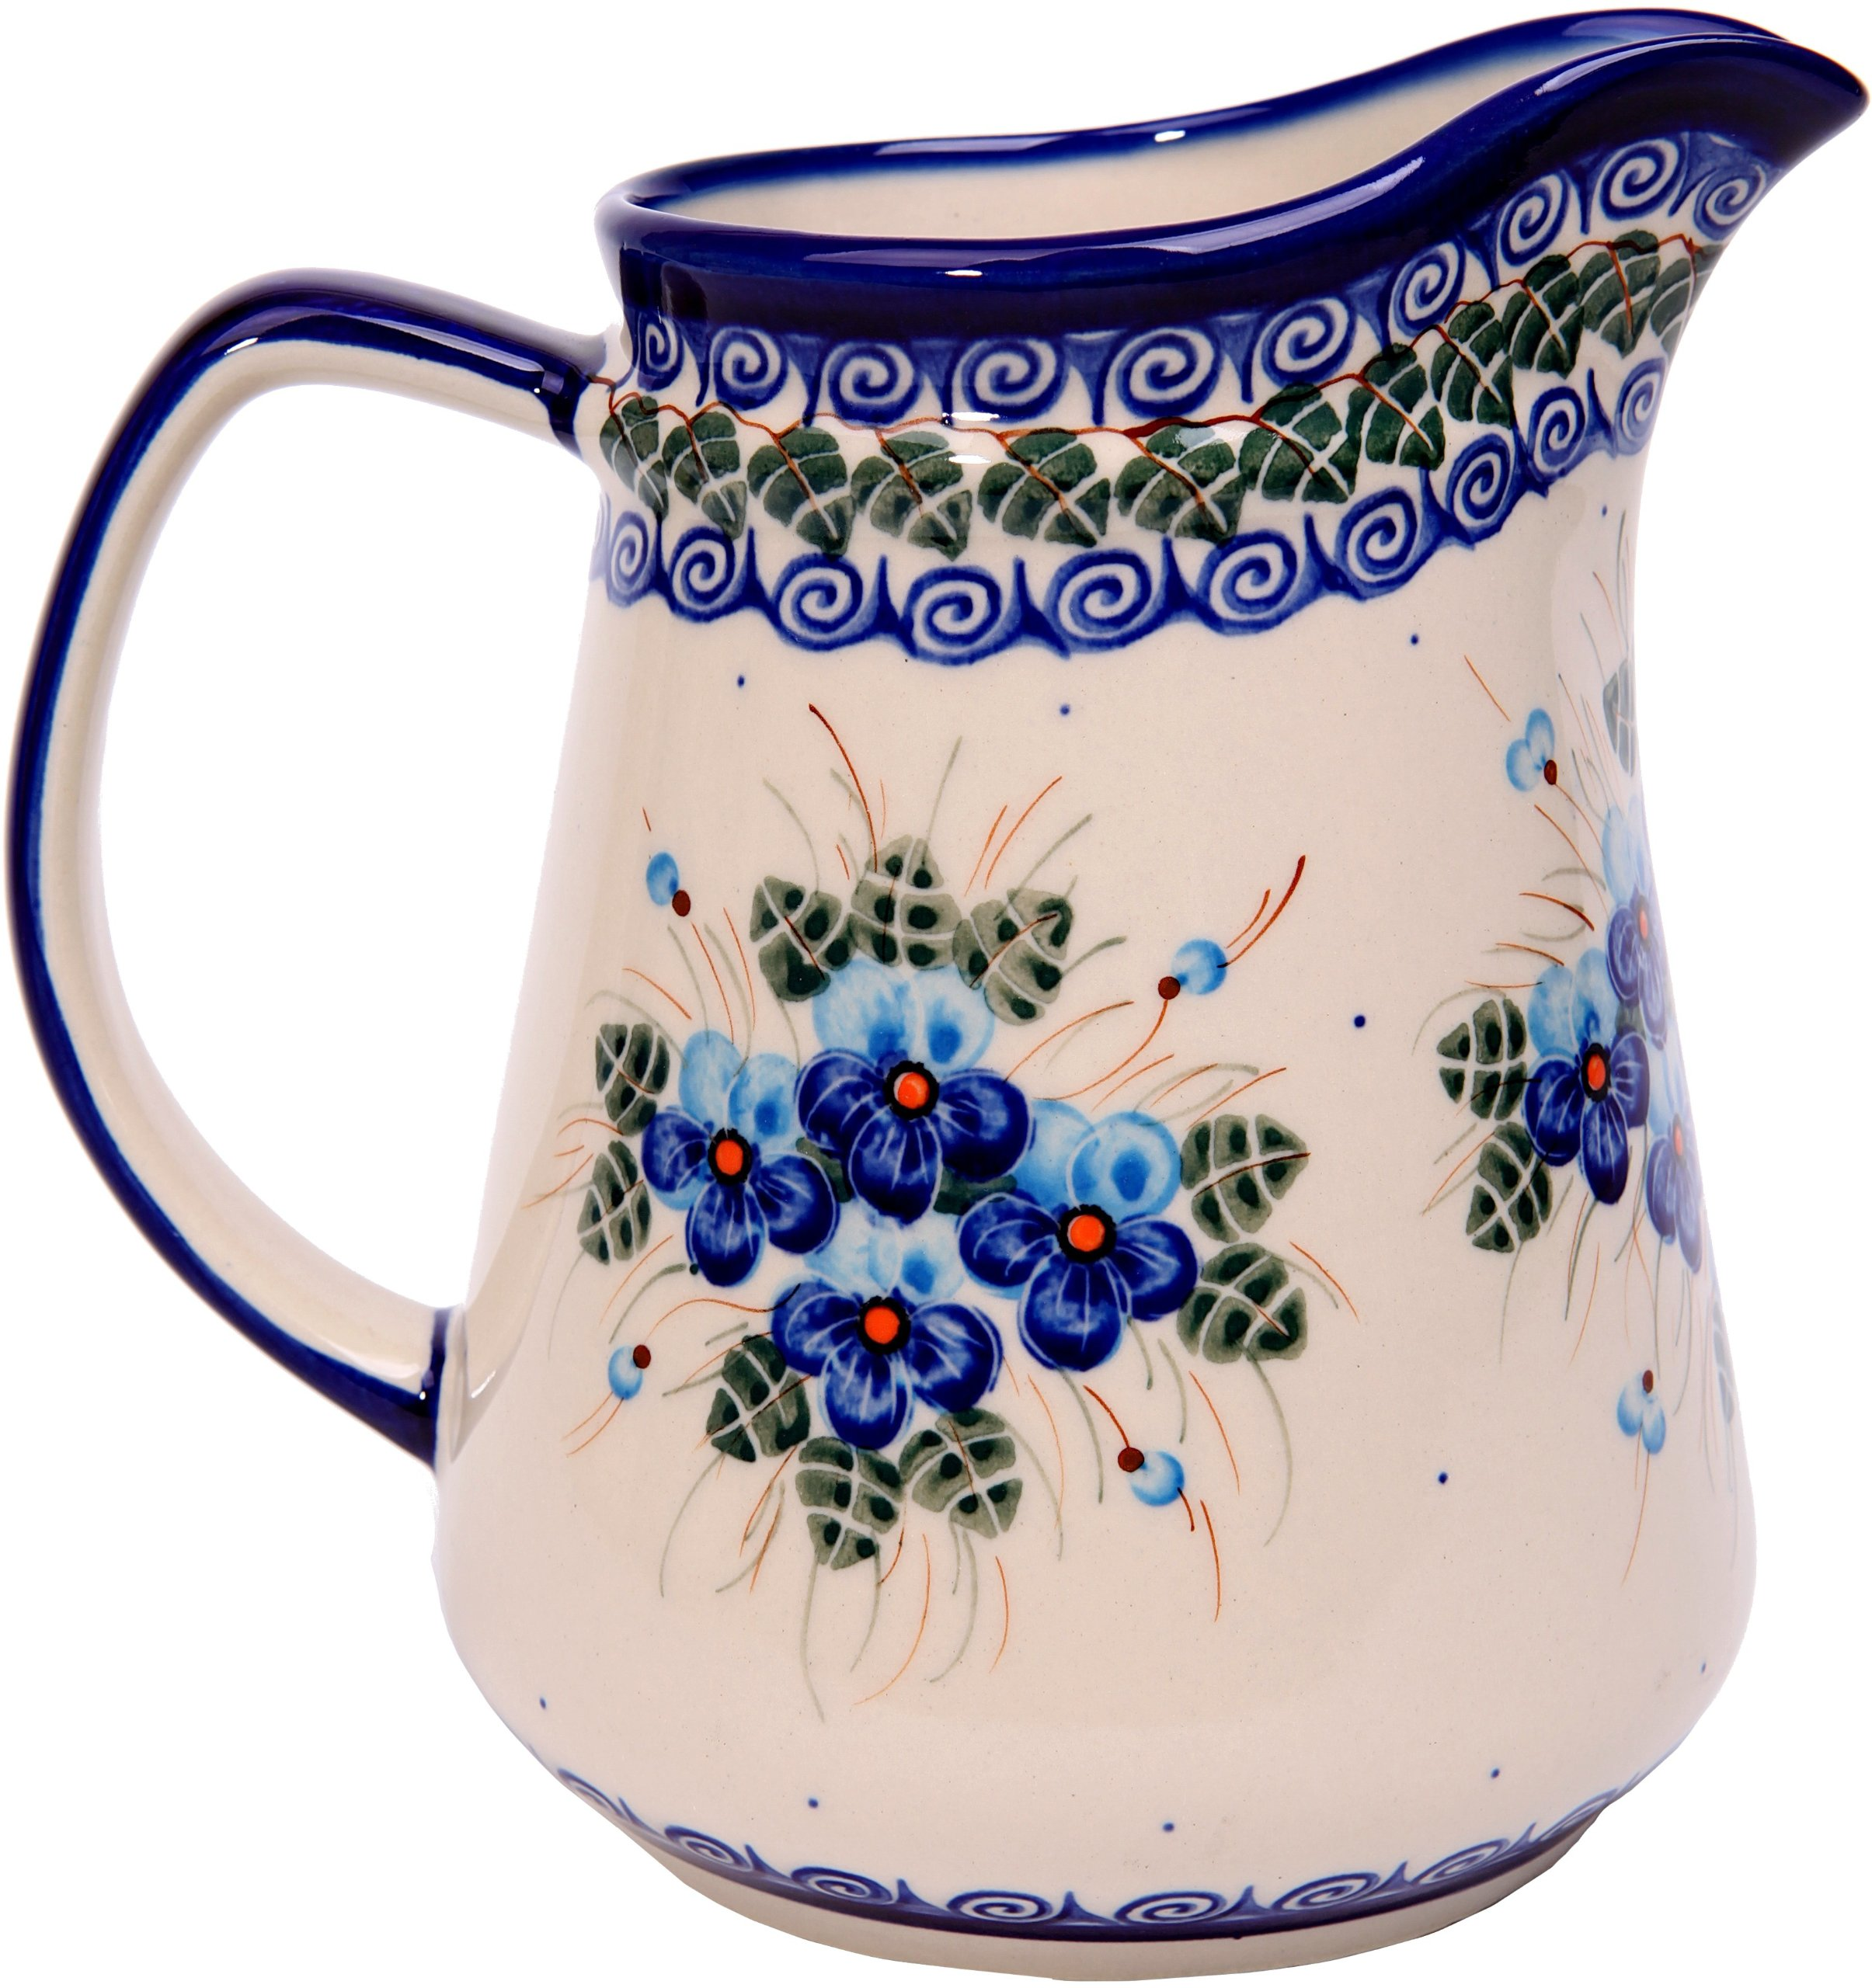 Polish Pottery Ceramika Boleslawiec, 0208/162, Pitcher Jacek 4, 5 1/2 Cups, Royal Blue Patterns with Blue Pansy Flower Motif